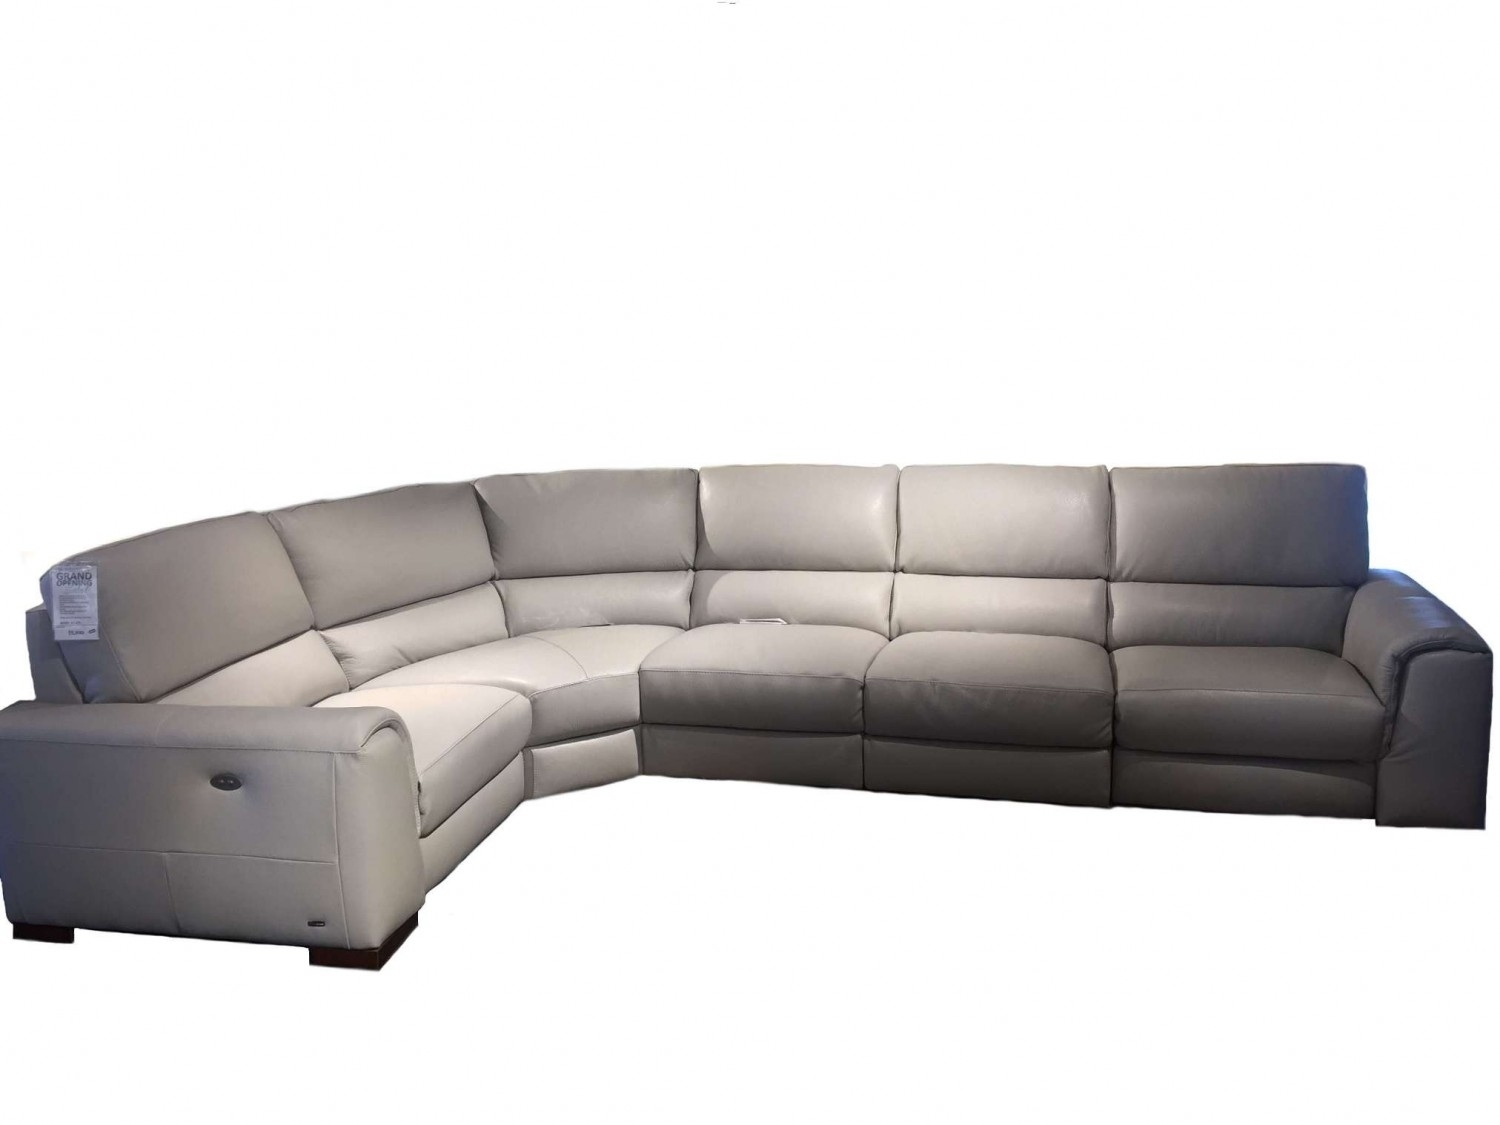 Natuzzi Editions Davide Leather Sectional | Leather Sectional Throughout Natuzzi Sectional Sofas (View 9 of 10)